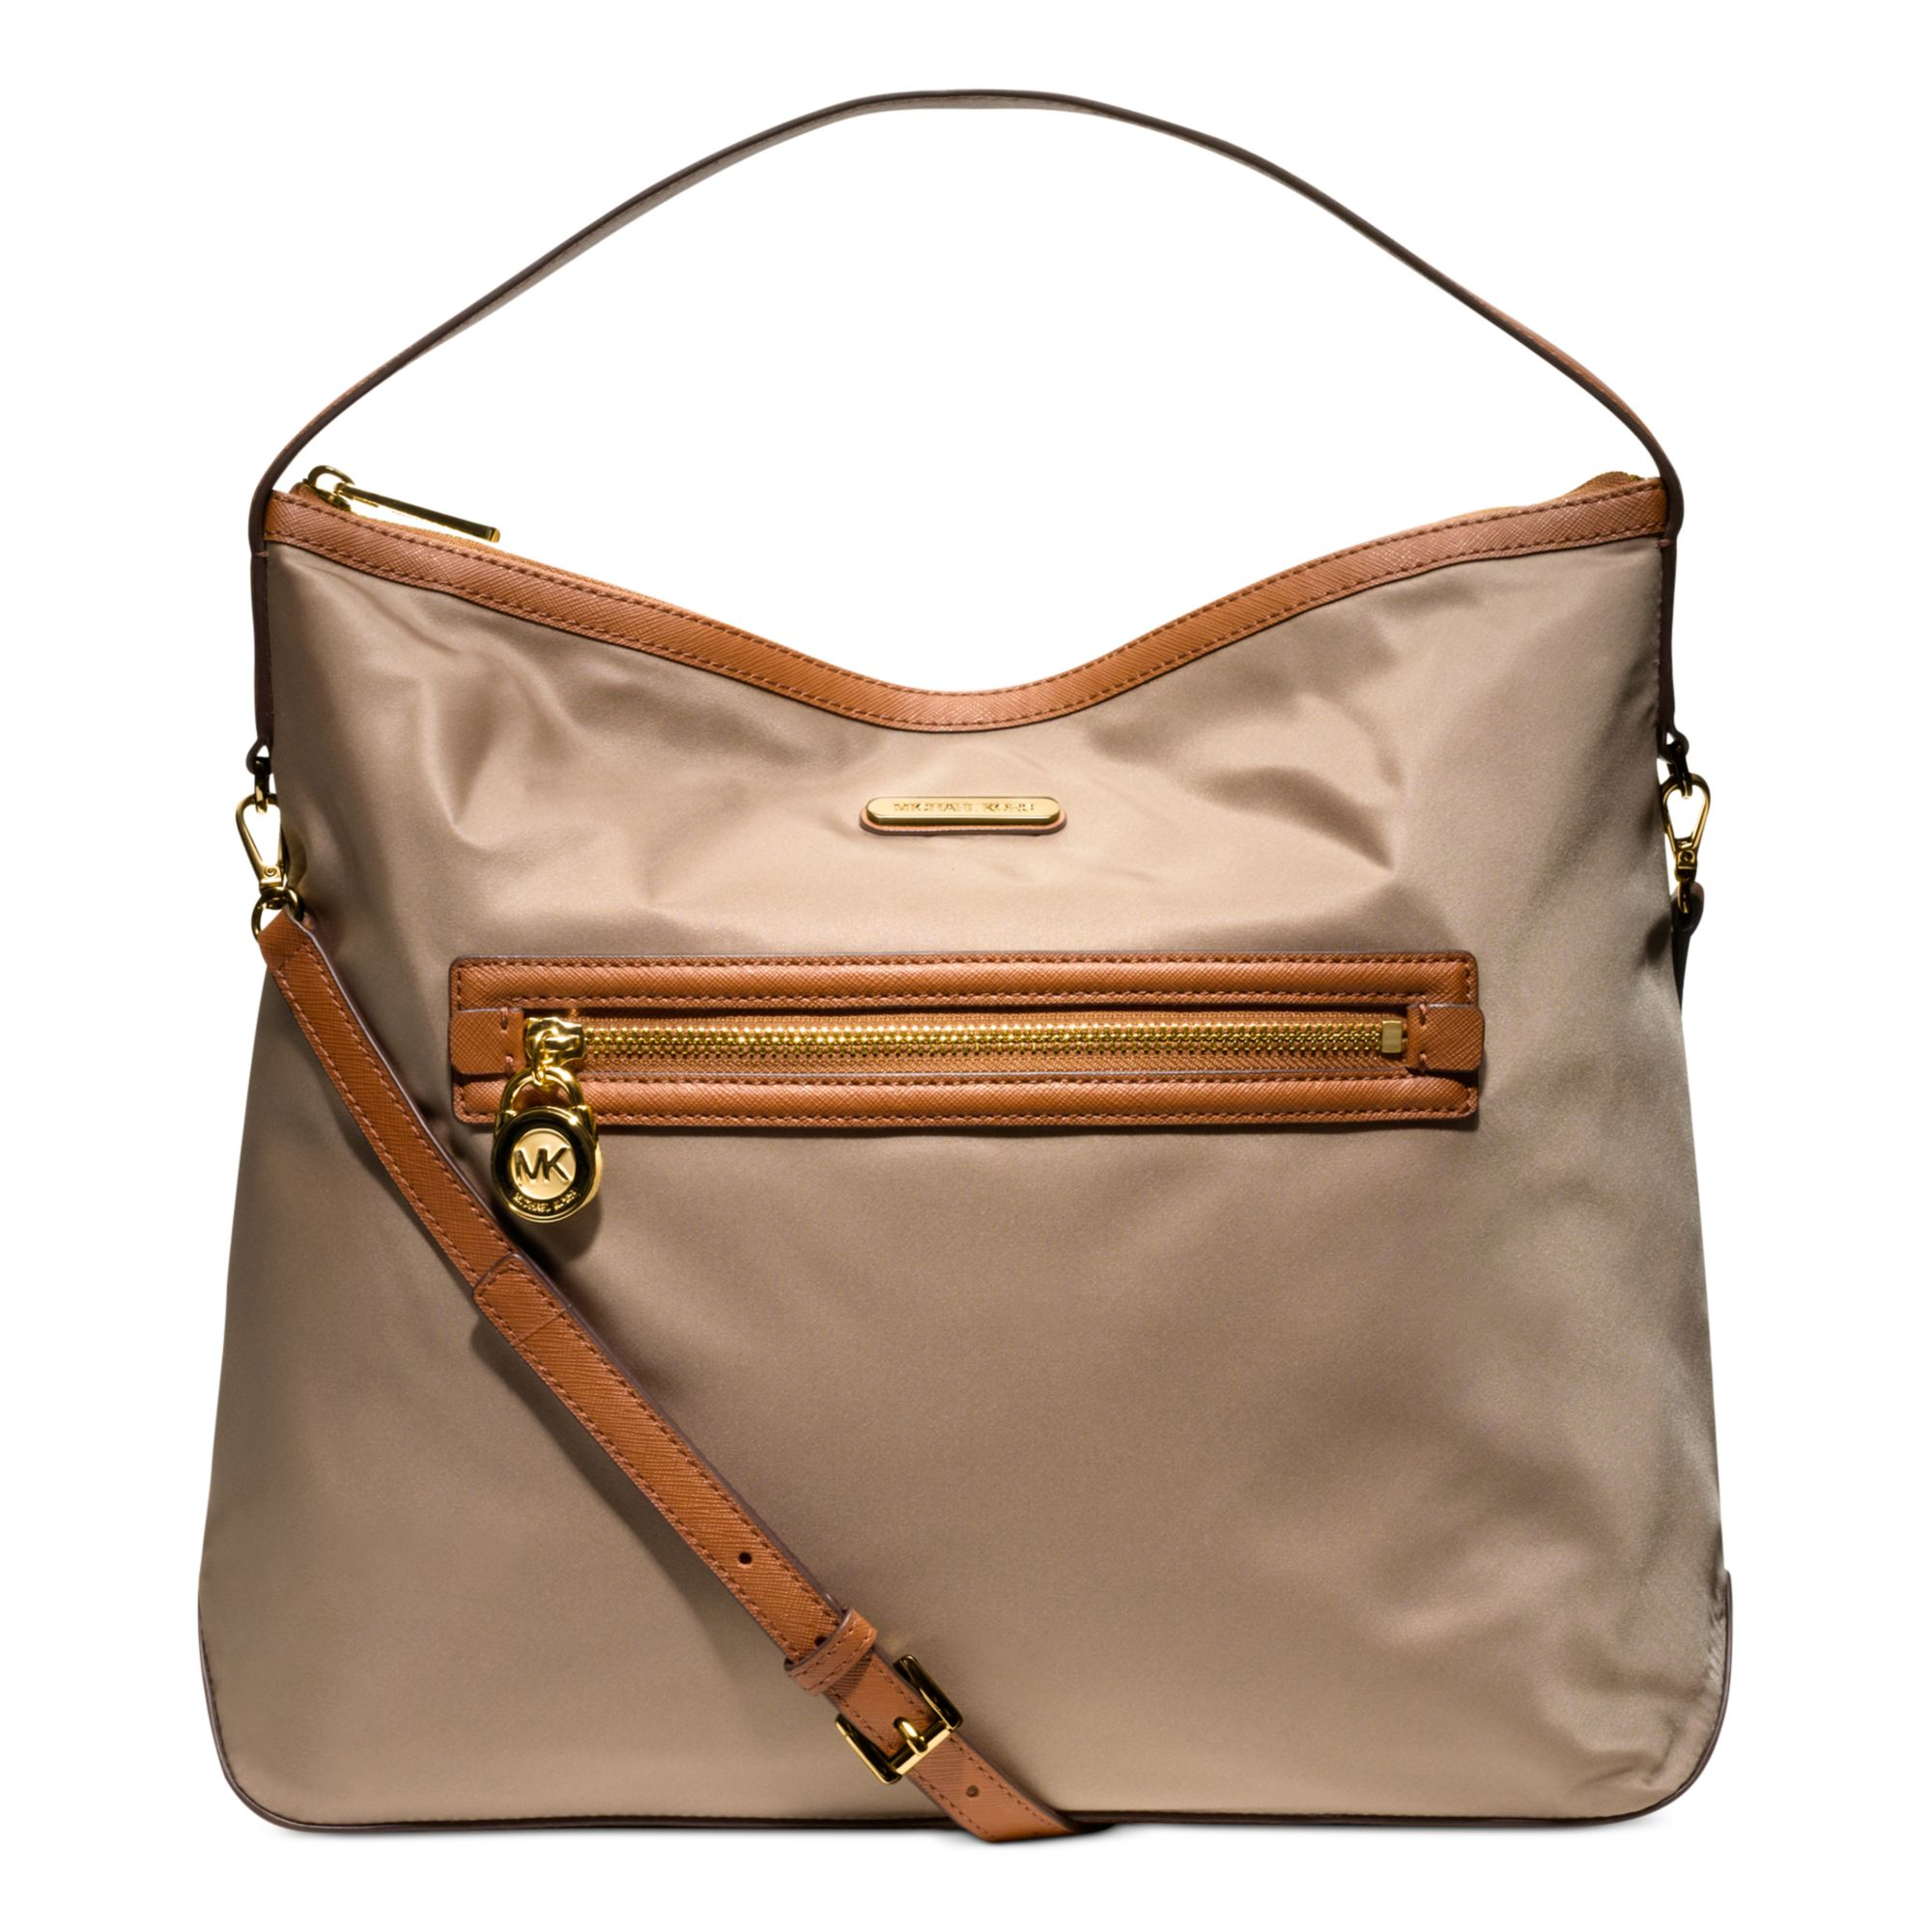 Kempton Large Shoulder Bag 53